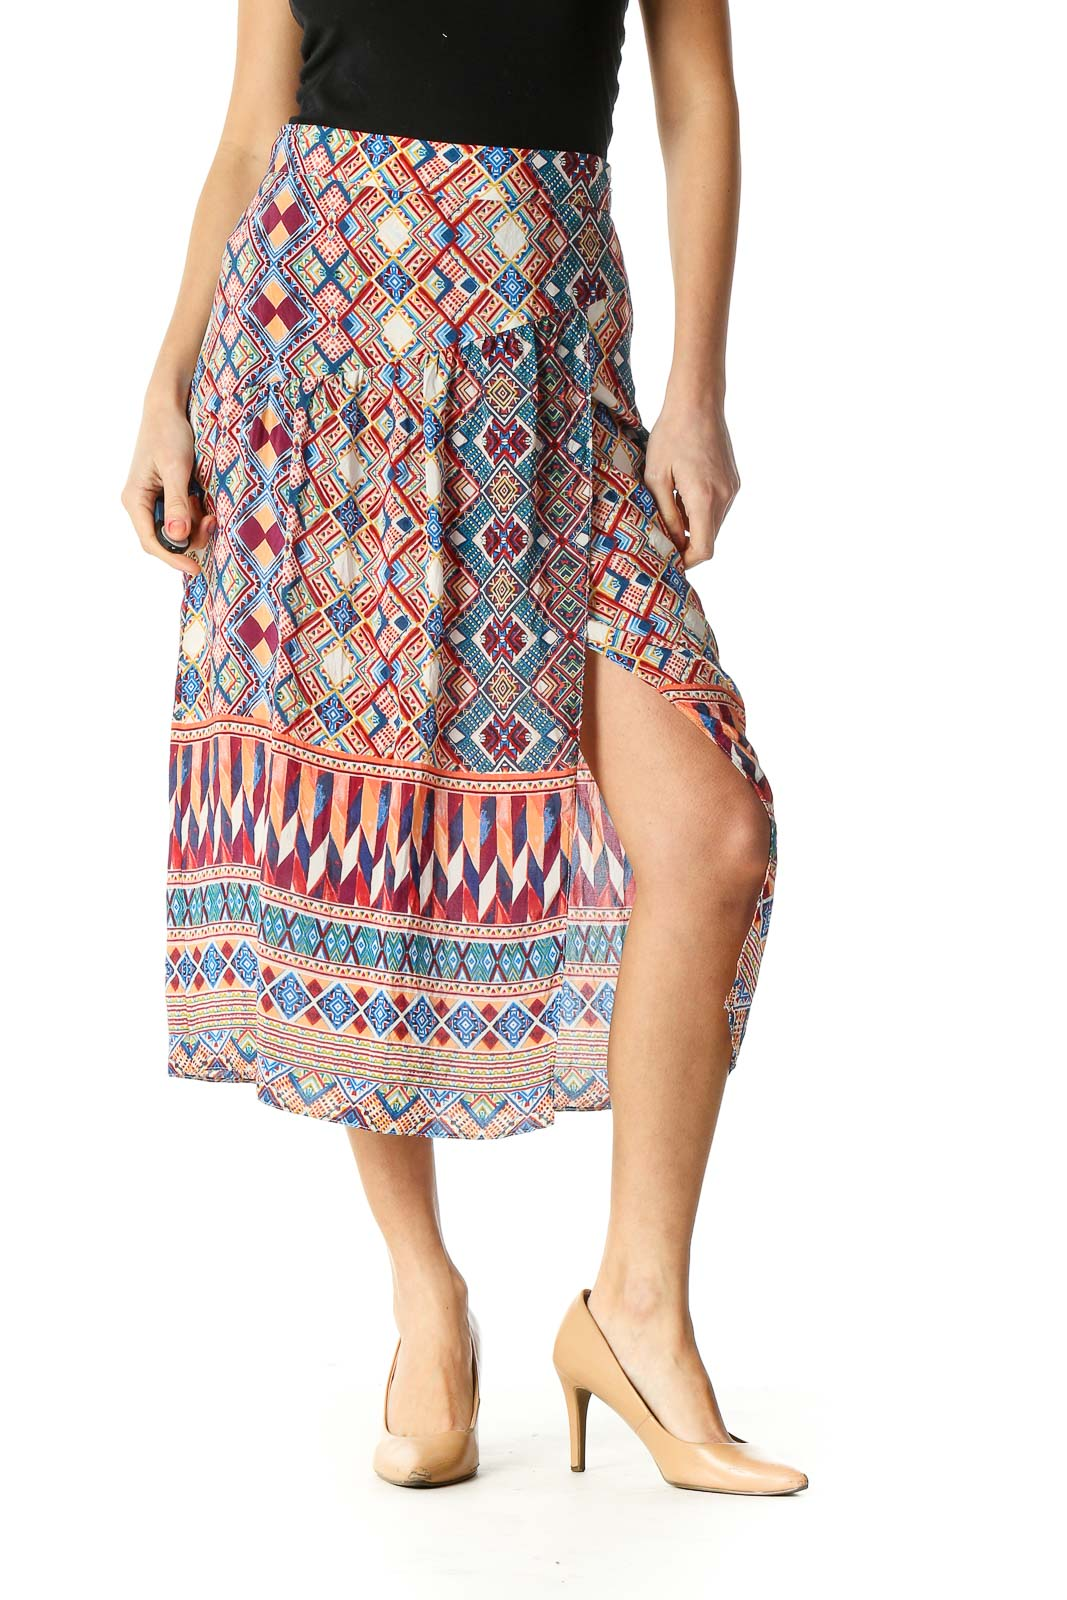 Red Graphic Print Bohemian A-Line Skirt Front